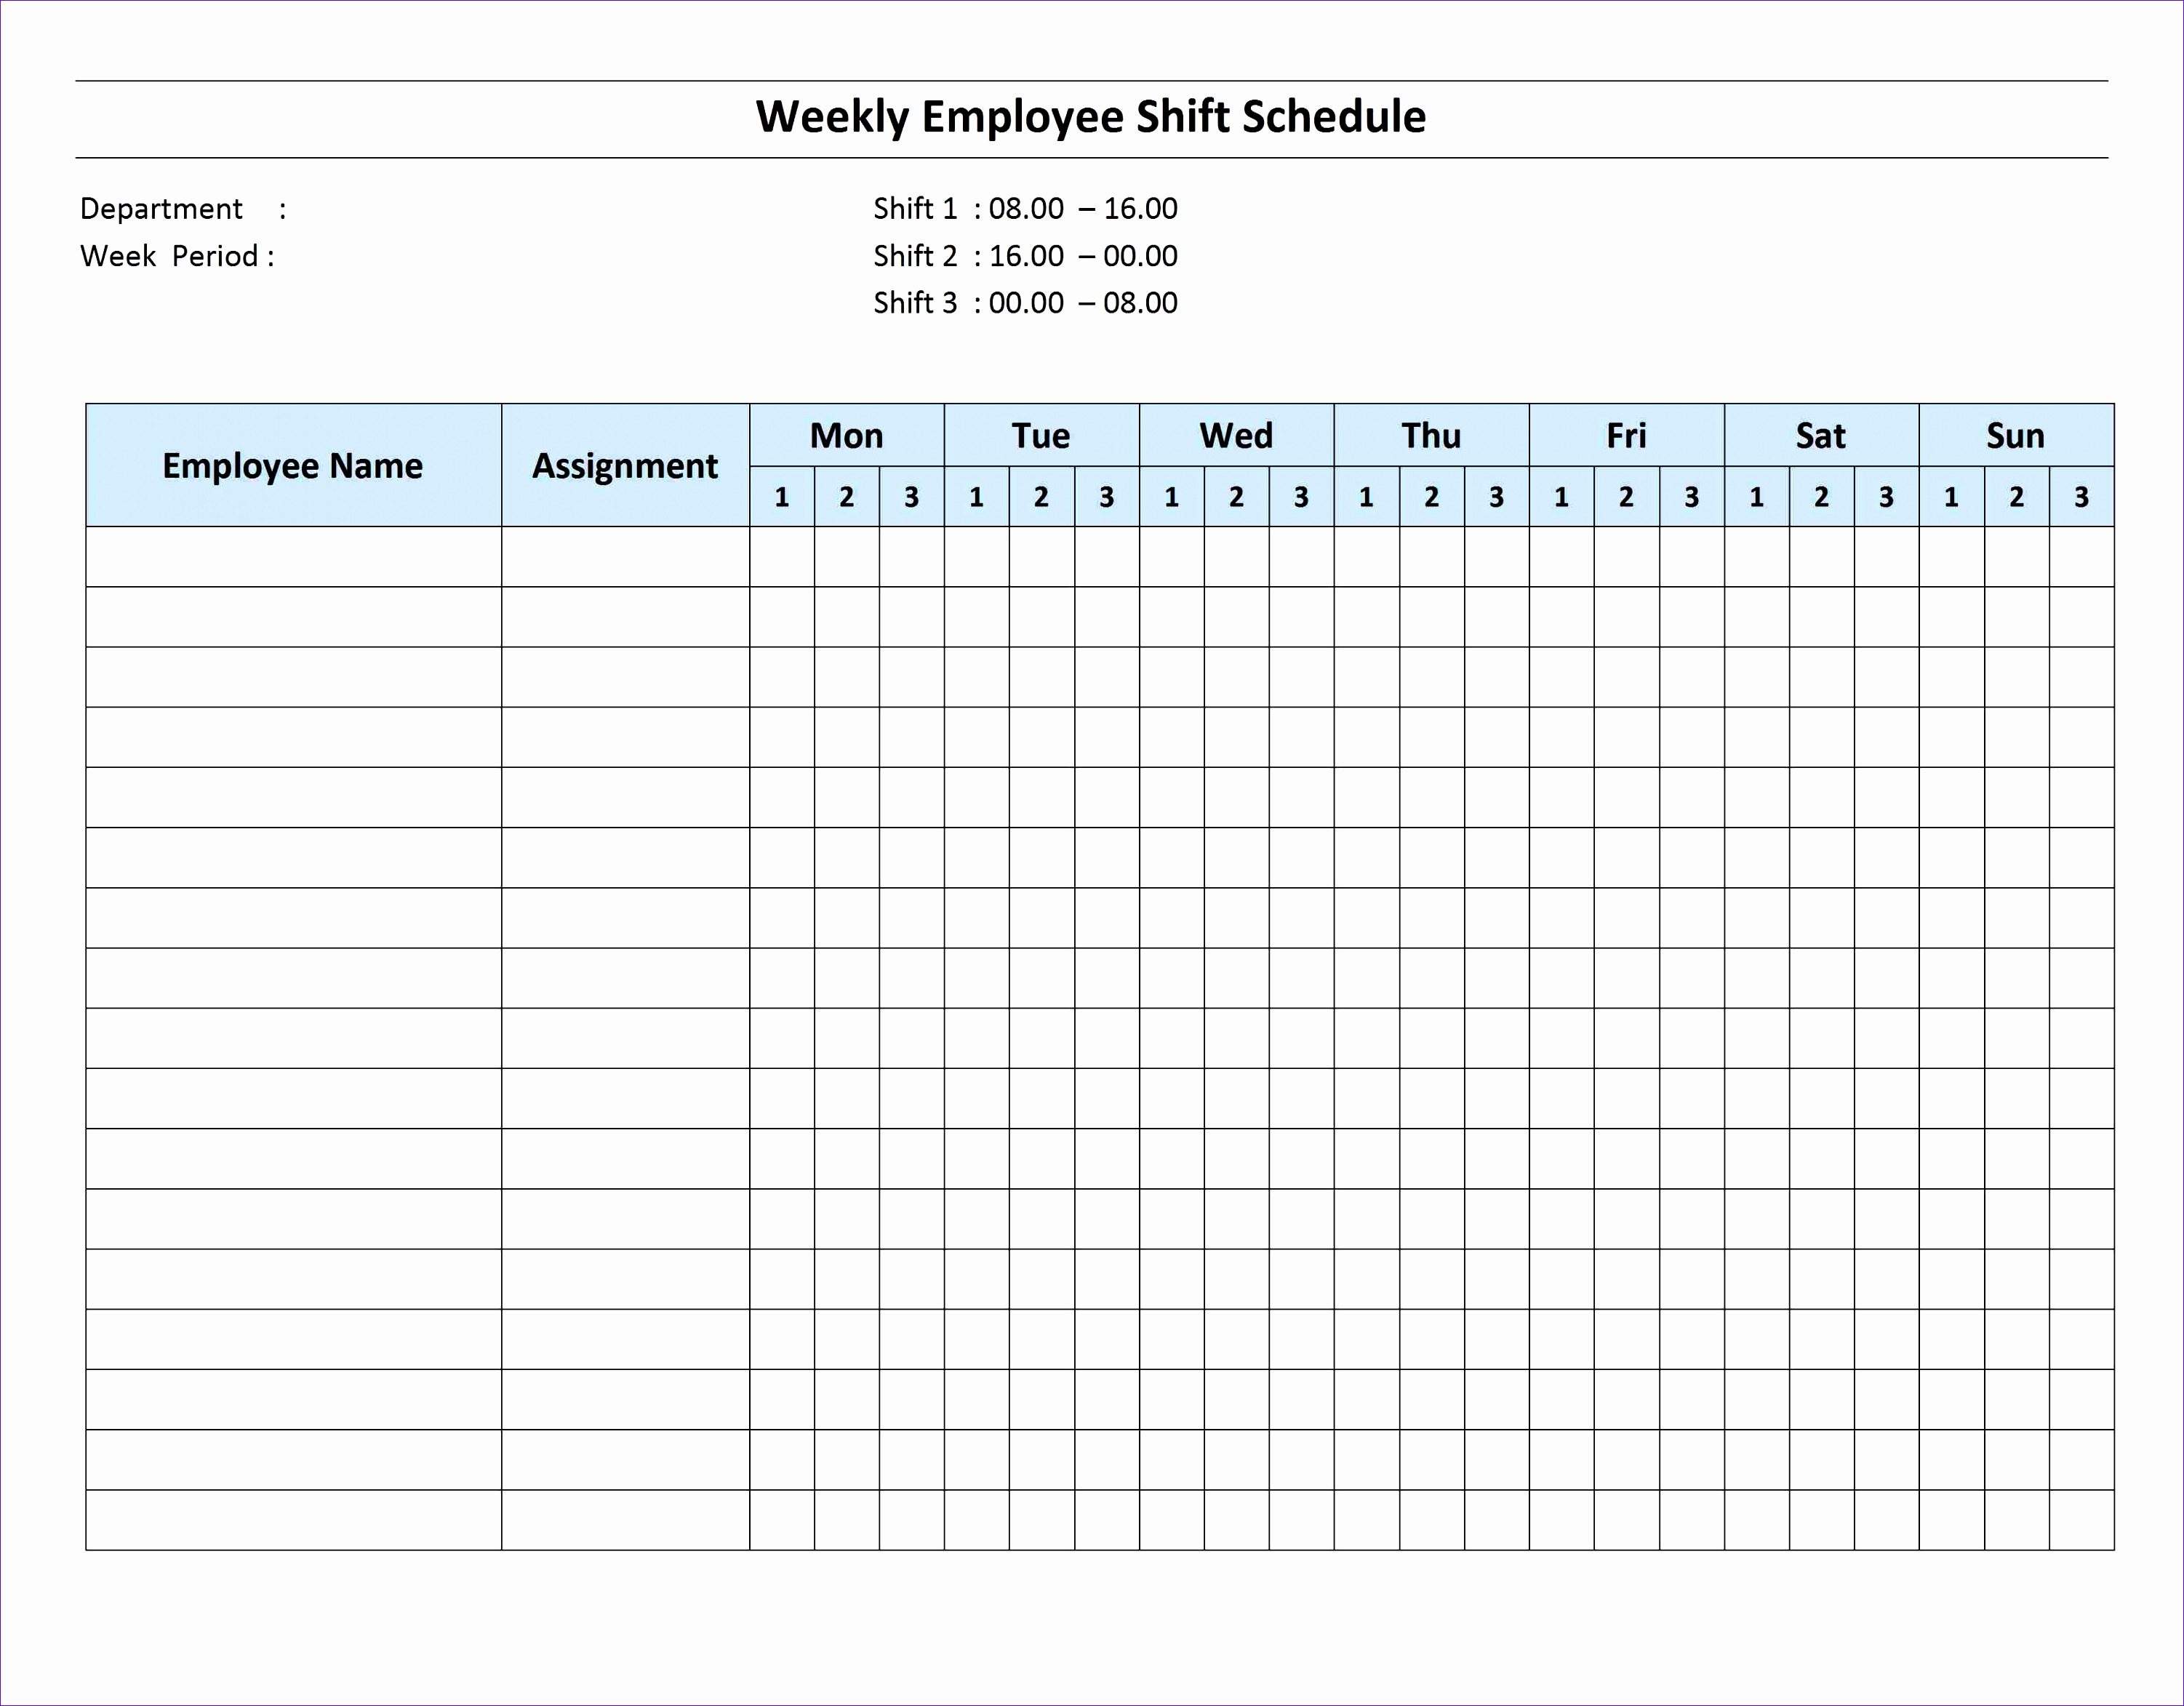 Shipping schedule template cdc nurse cover letter production schedule template excel free images templates example break even point excel template trupc luxury production alramifo Choice Image